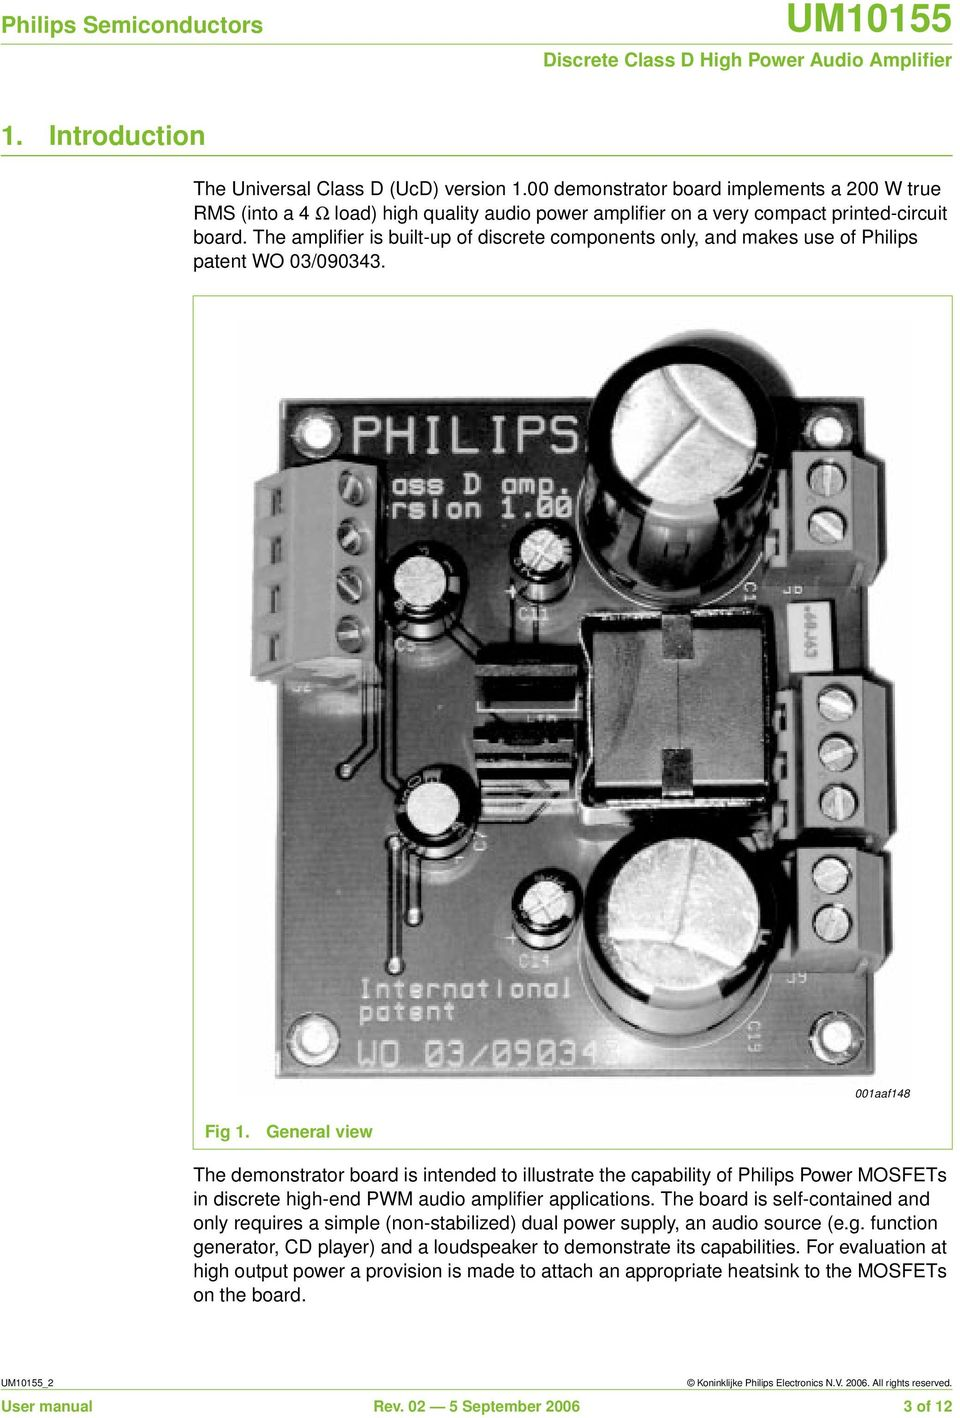 Um Discrete Class D High Power Audio Amplifier Document Information Collection Scheme Mosfets General View The Demonstrator Board Is Intended To Illustrate Capability Of Philips In